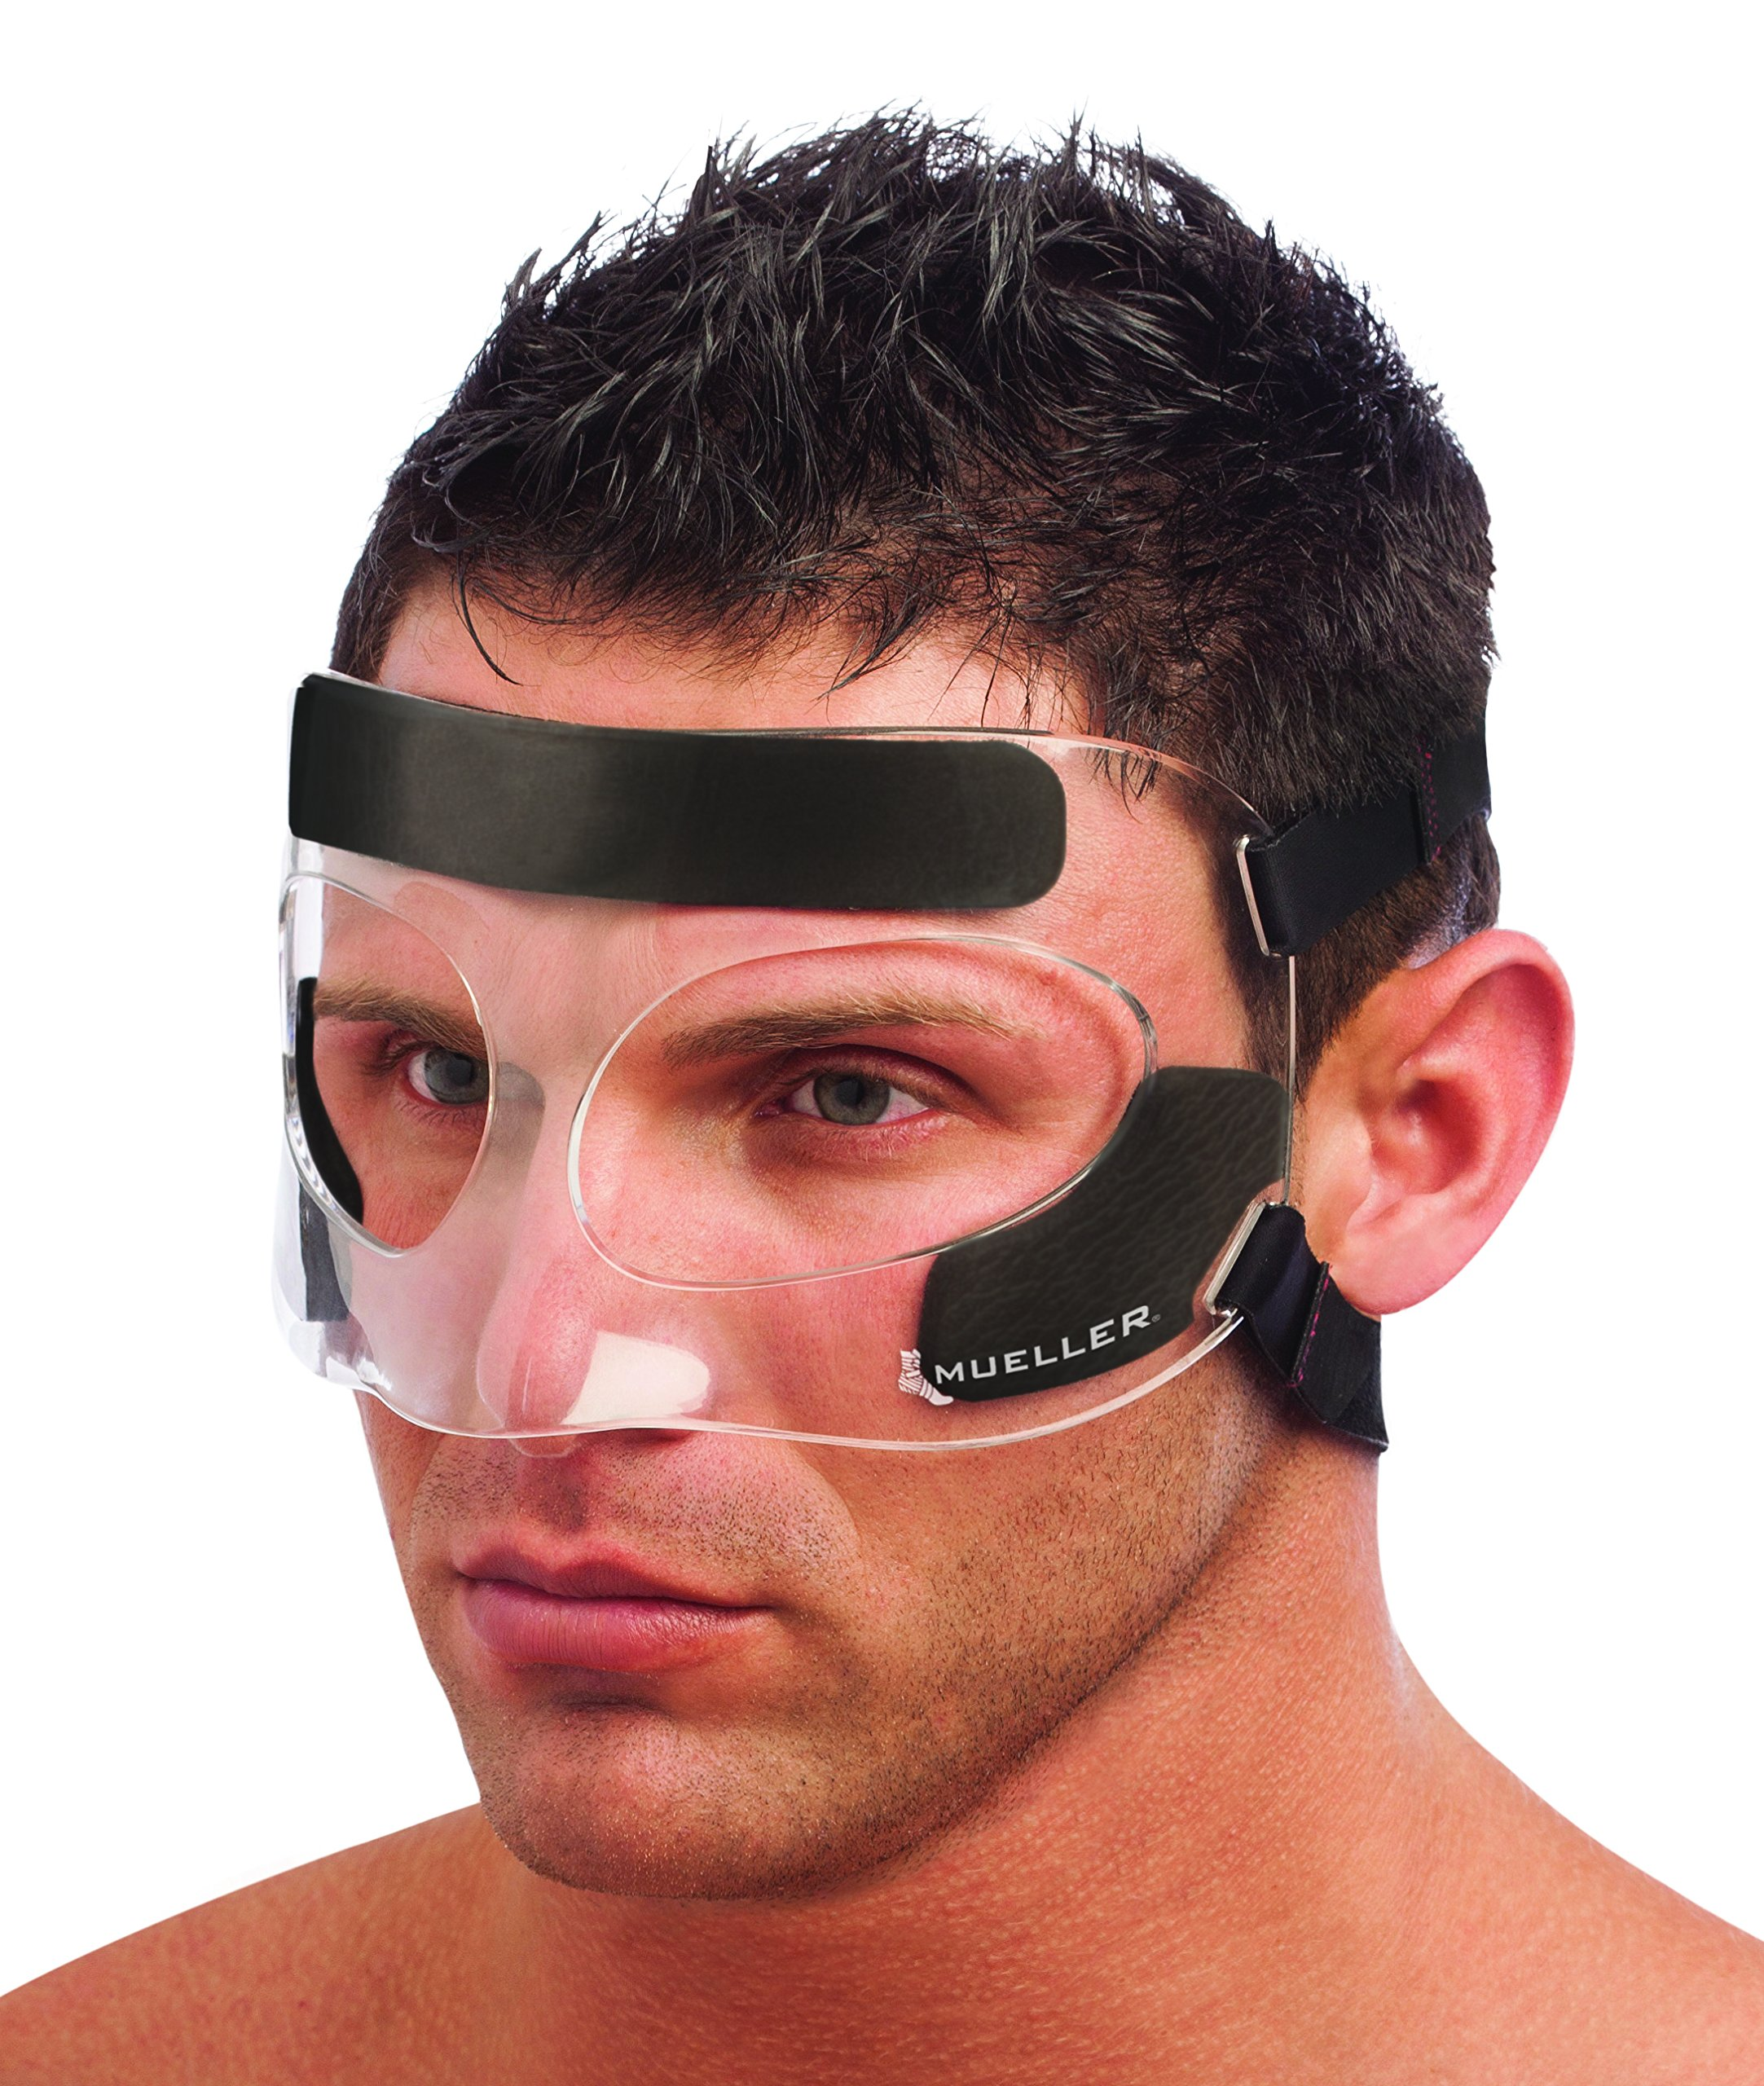 Mueller Face Guard | Protection from Impact injuries to Nose and Face, Clear, One Size Fits Most by Mueller